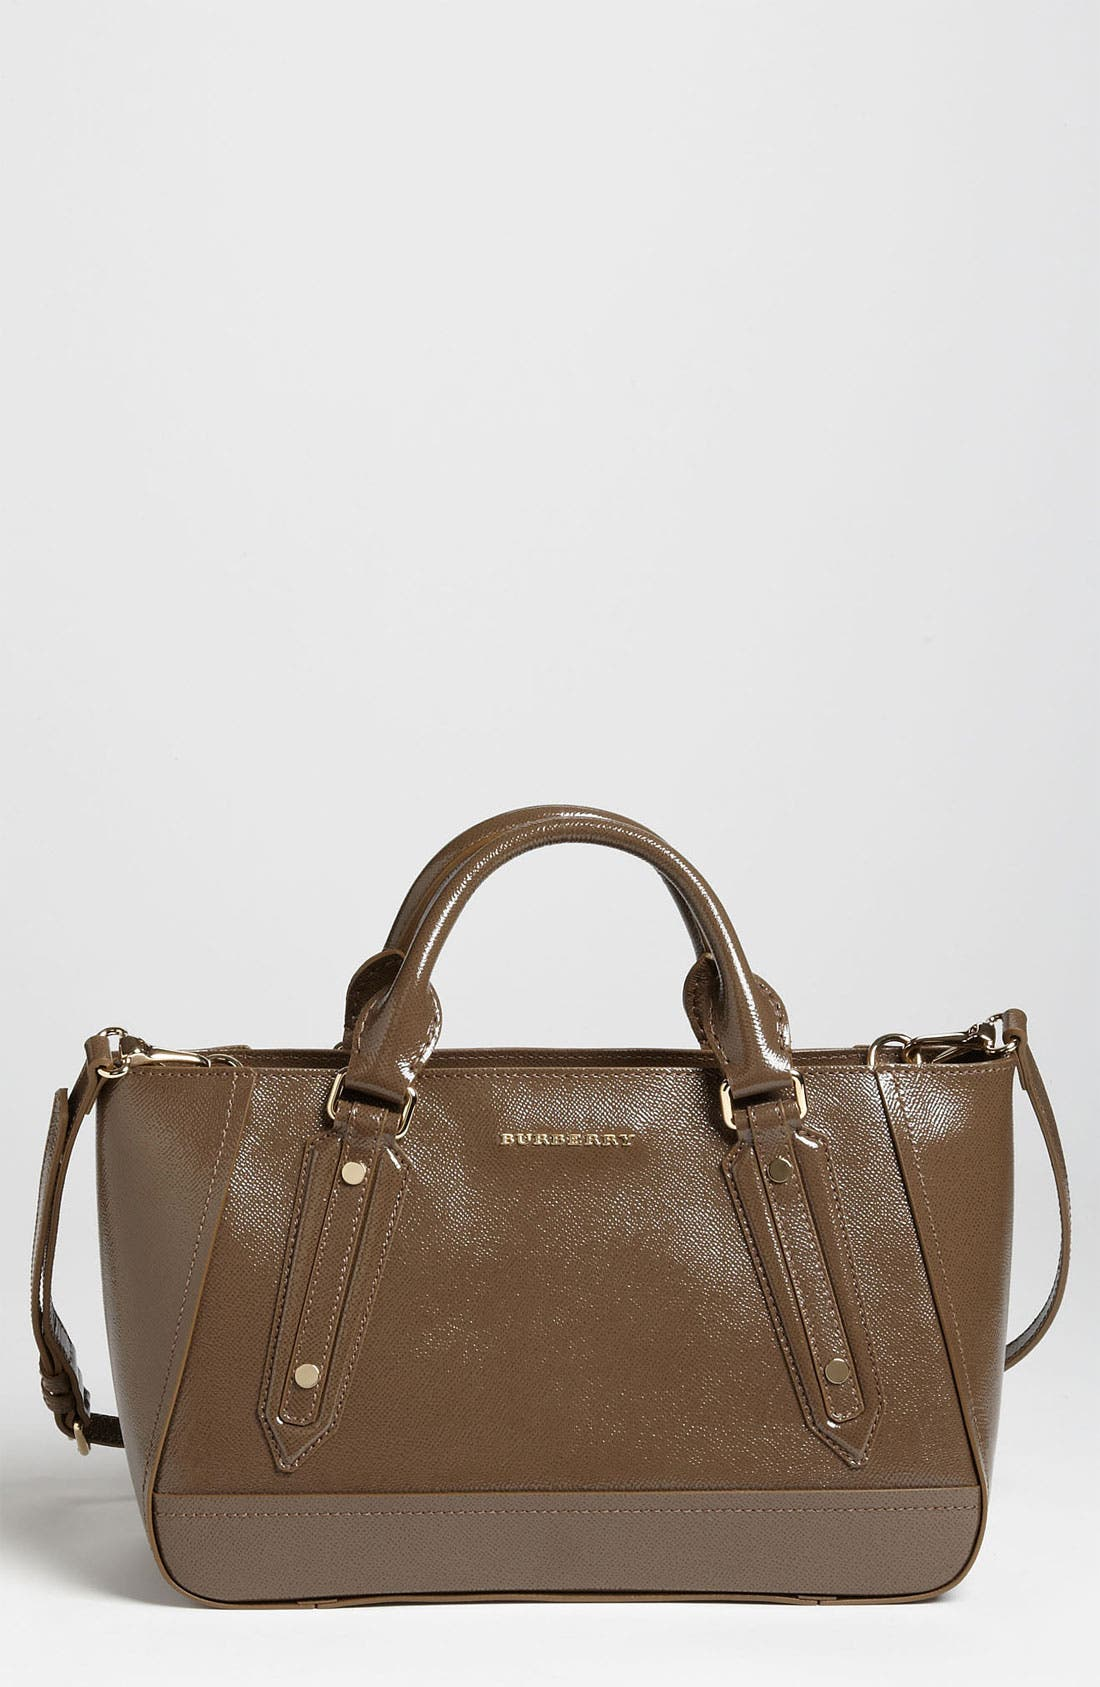 Alternate Image 1 Selected - Burberry 'Ladies London' Leather Tote